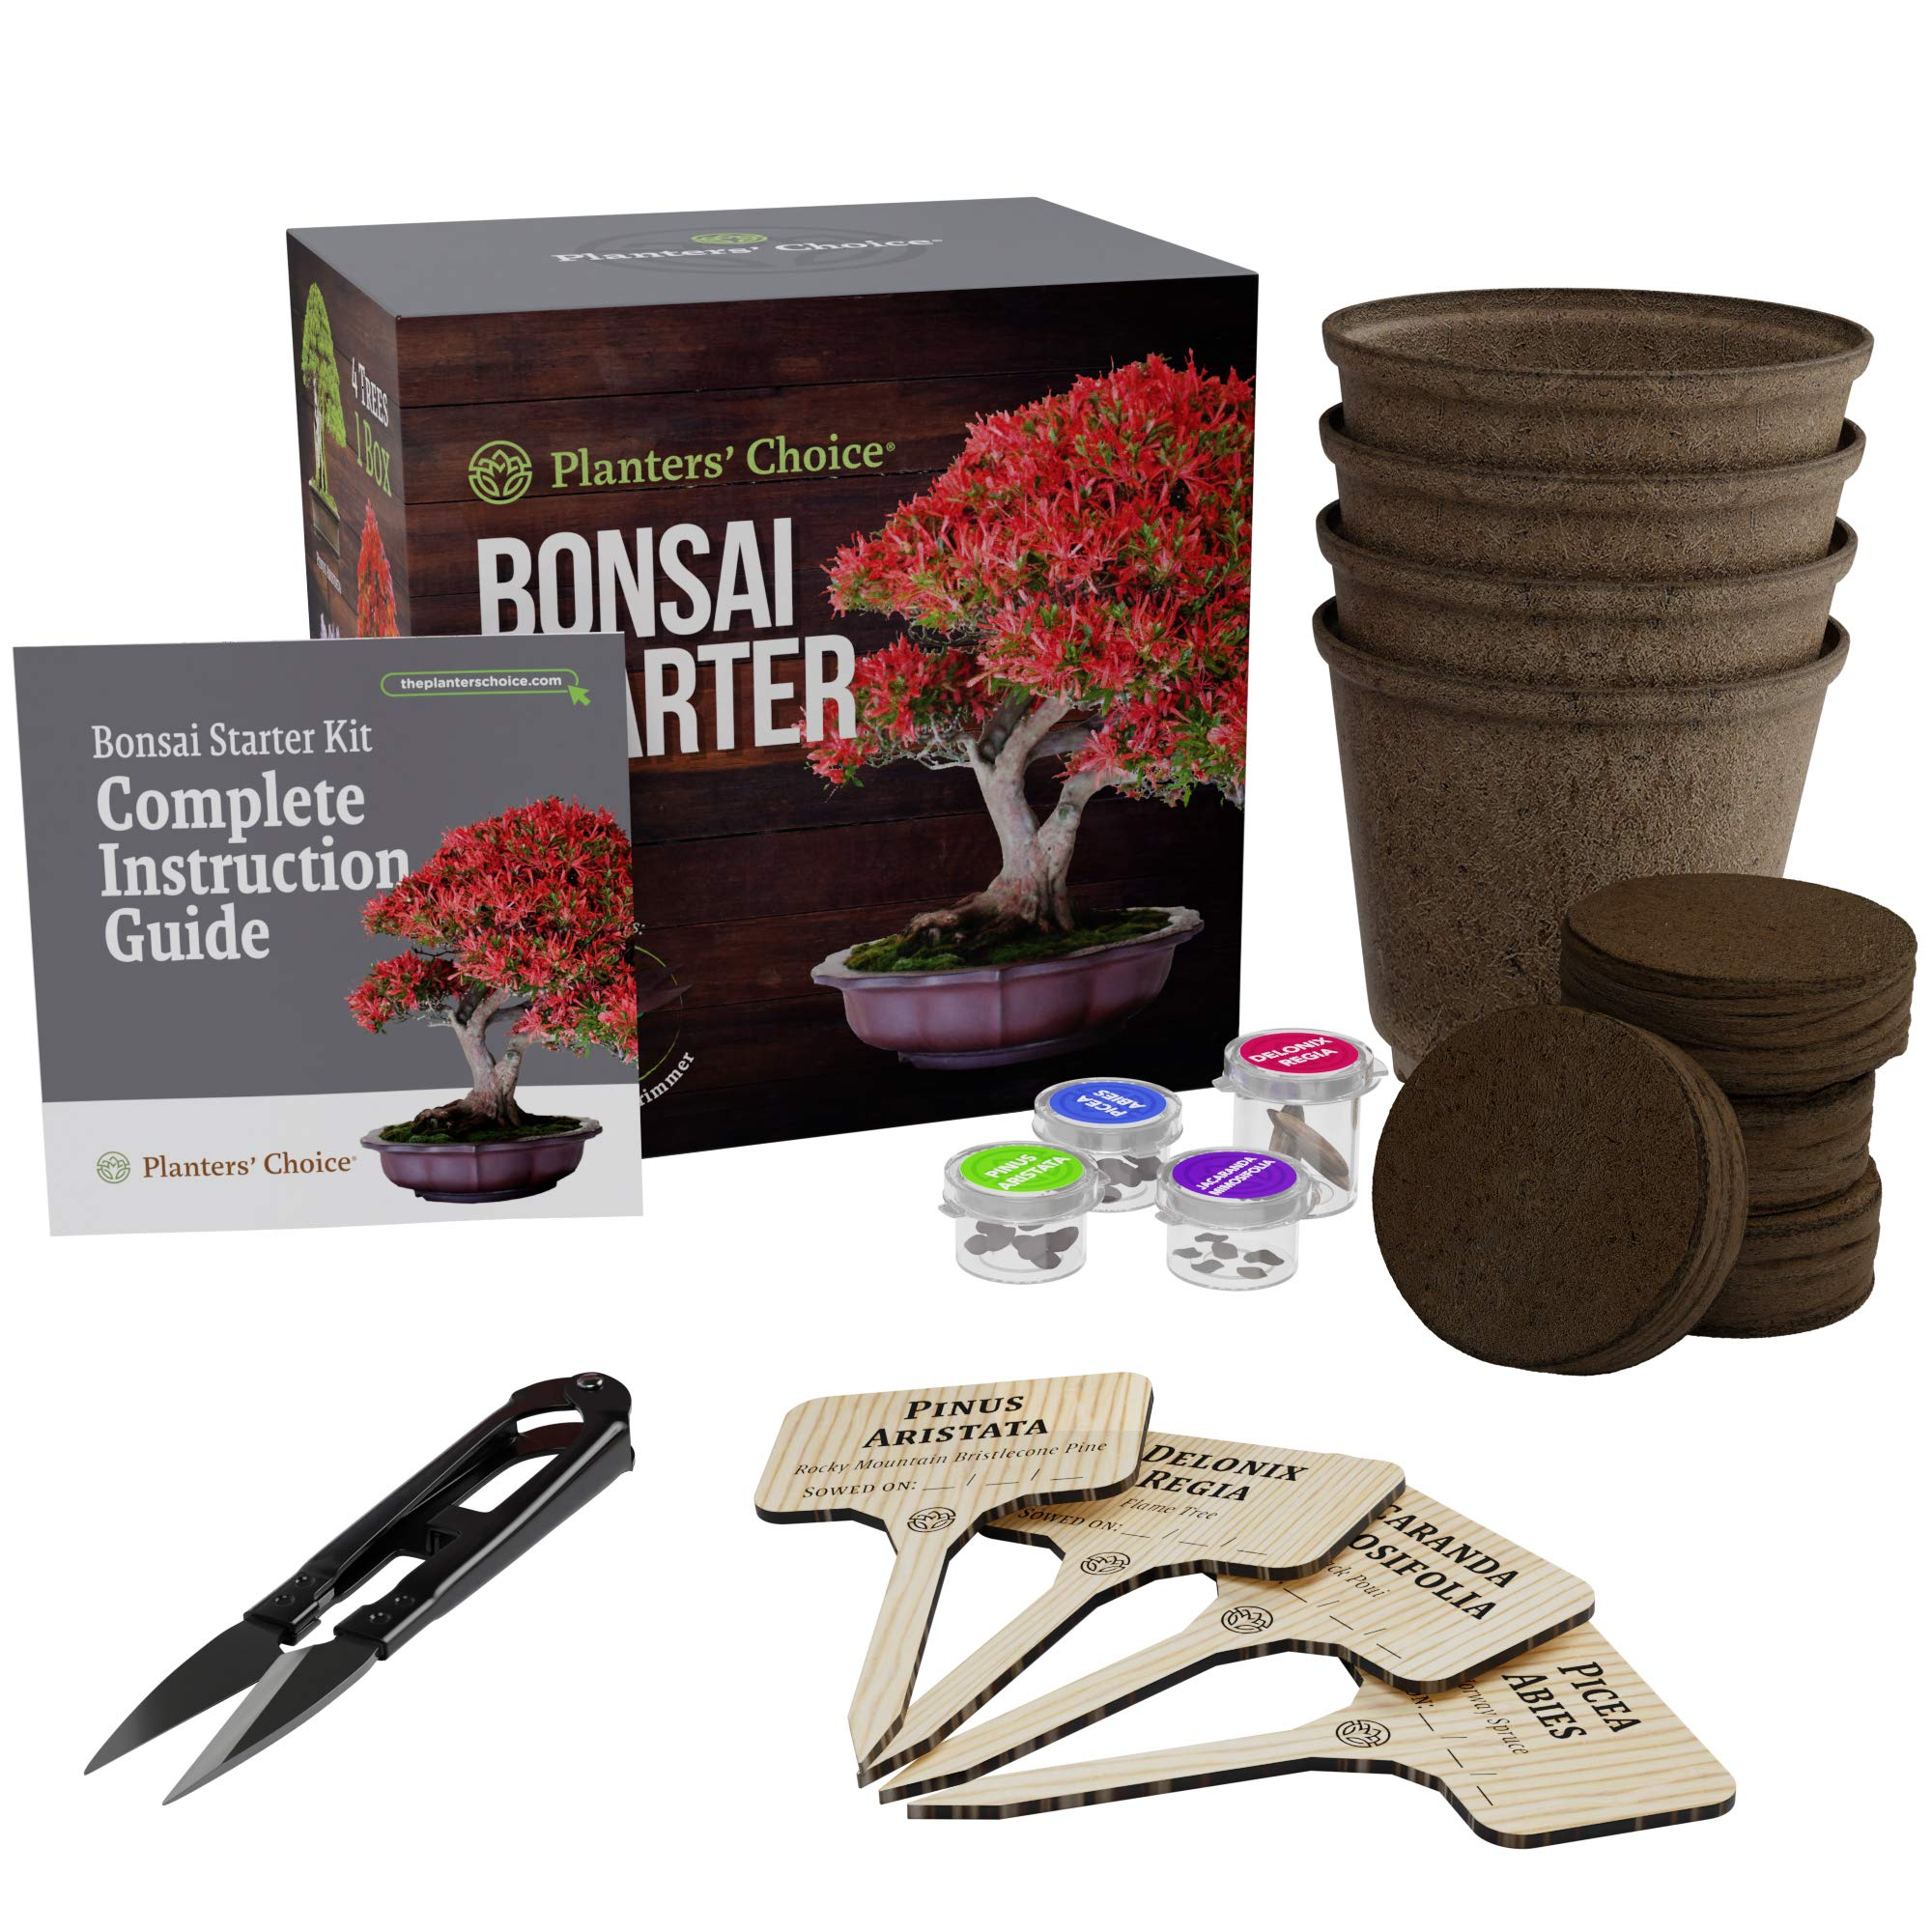 Planters' Choice Bonsai Starter Kit - The Complete Kit to Easily Grow 4 Bonsai Trees from Seed with Comprehensive Guide & Bamboo Plant Markers - Unique Gift Idea (Bonsai) by Planters' Choice